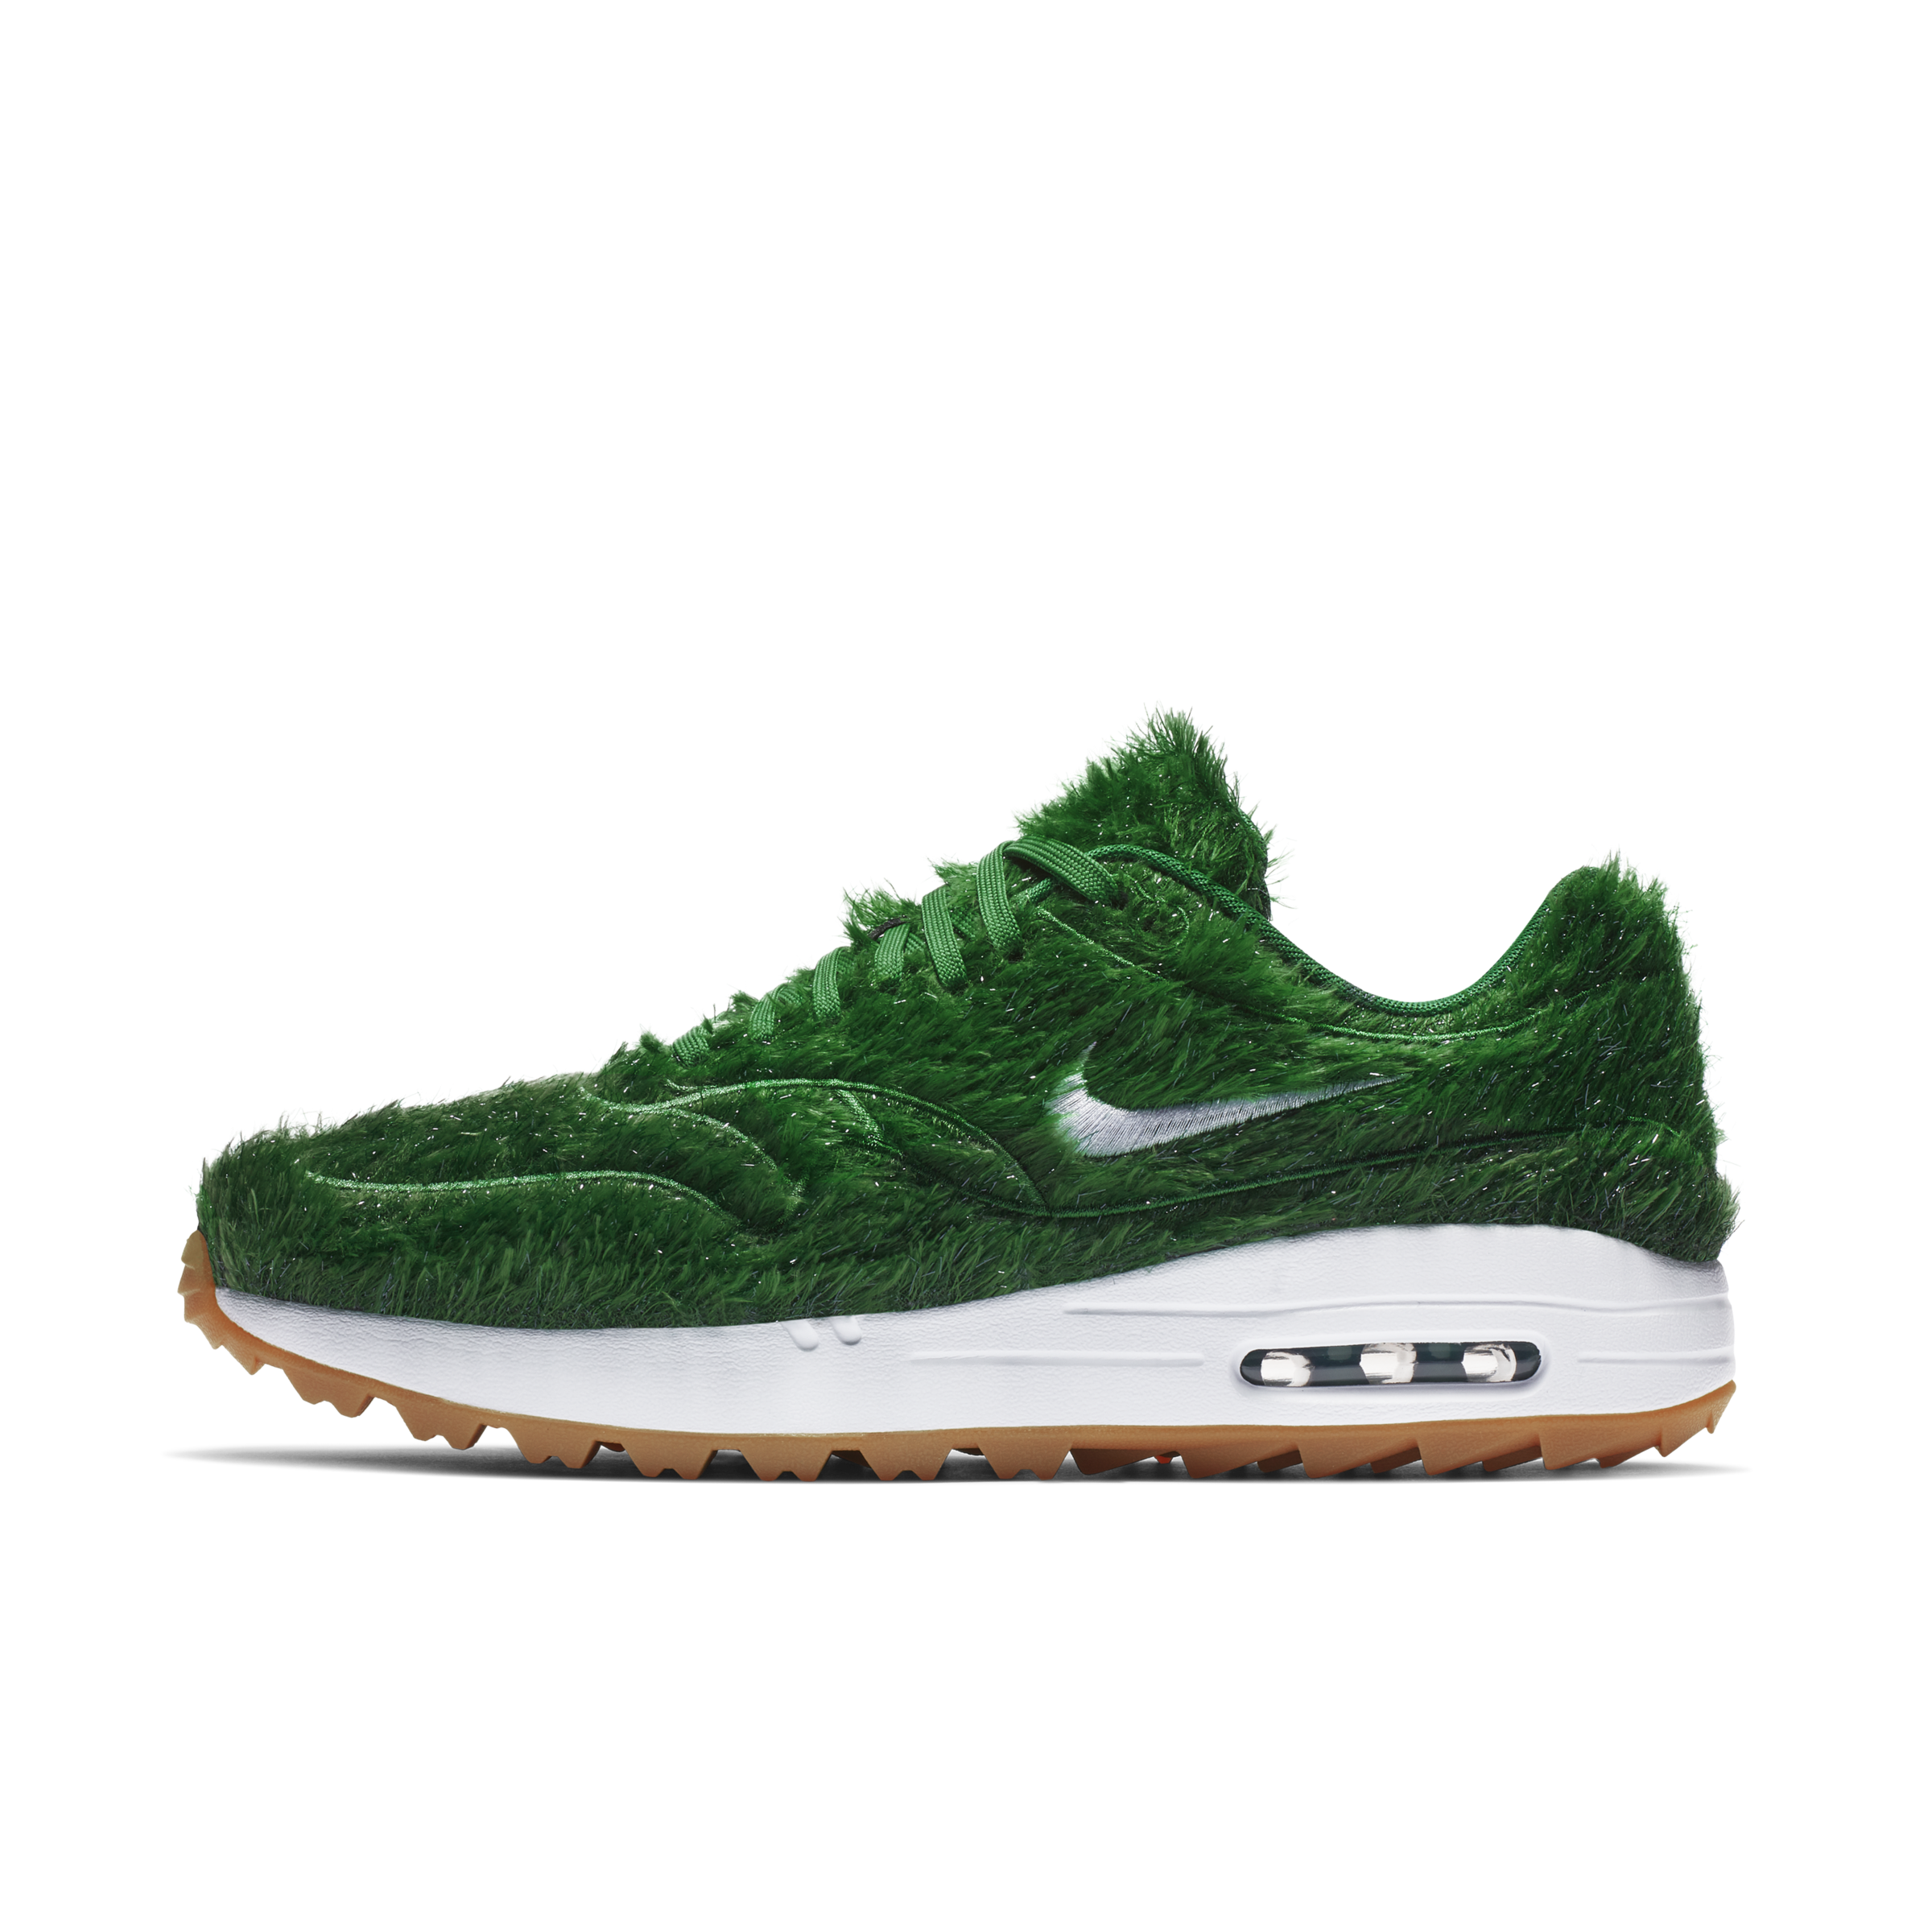 Grass in air png. Nike max golf shoes